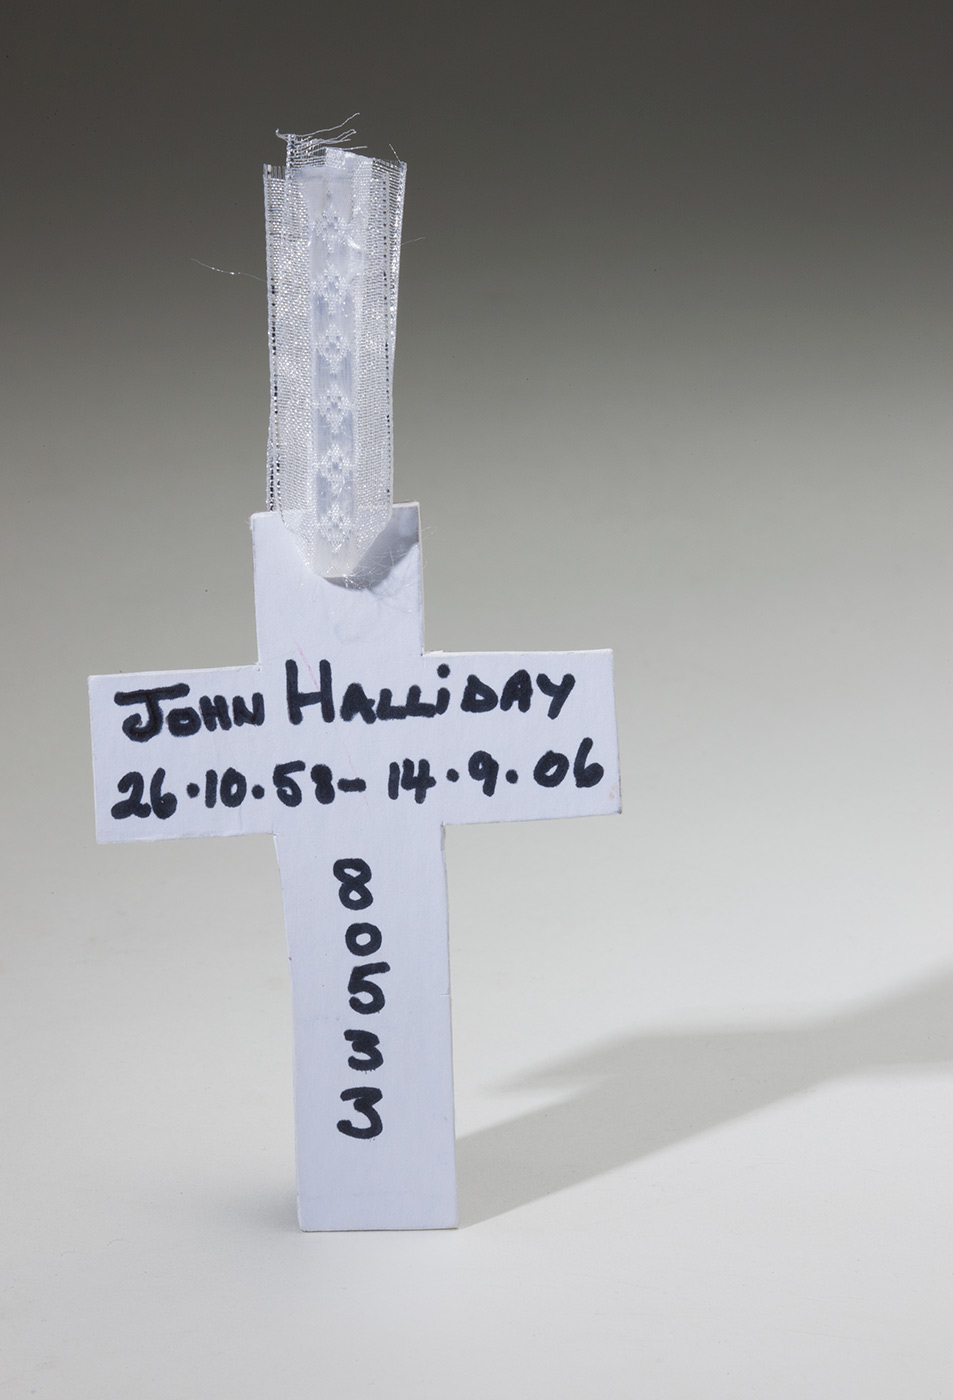 A photograph of a hand-made crucifix of white cardboard. Handwritten horizontally in black ink is 'John Halliday, 26.10.53-14.9.06'. The number '80533' is written vertically underneath. Attached to the top of the cross is a small piece of white ribbon. - click to view larger image